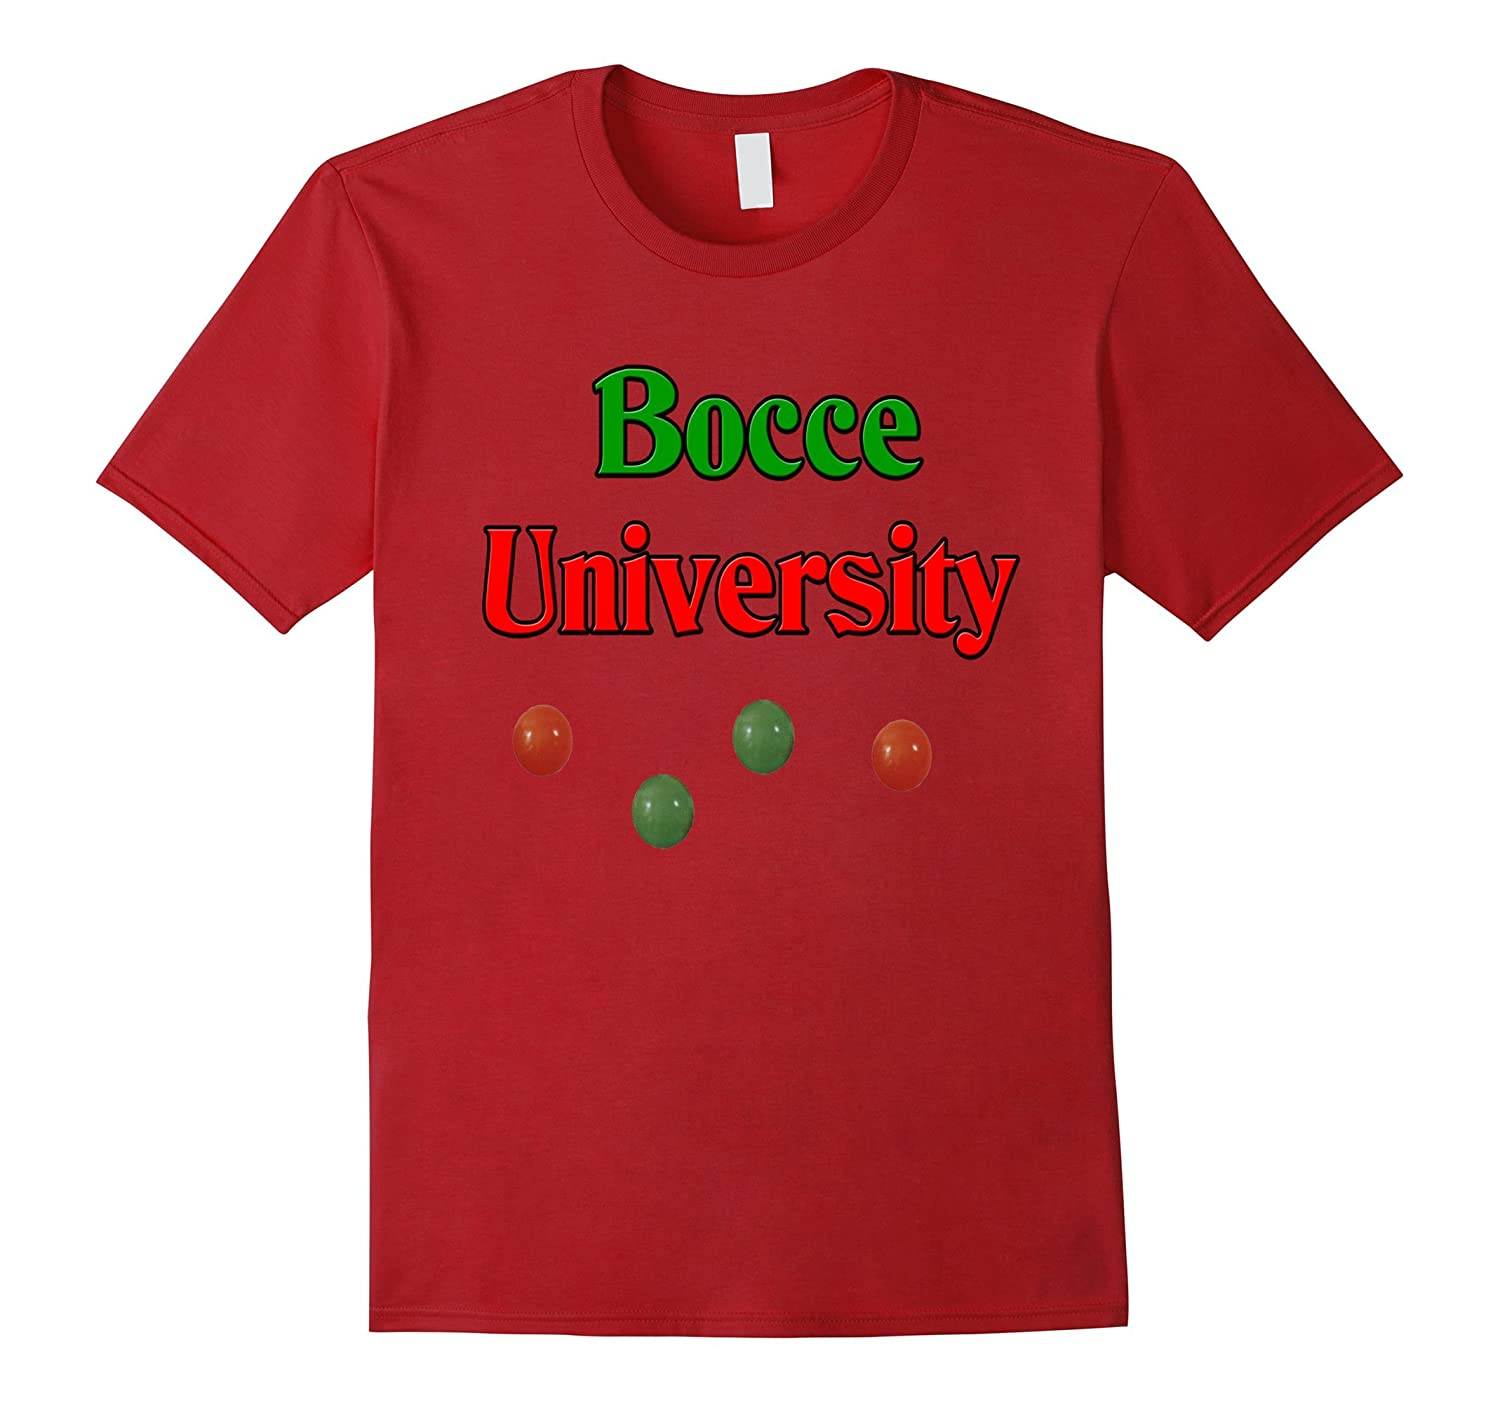 Bocce University (Italian sport) t-shirt-TH